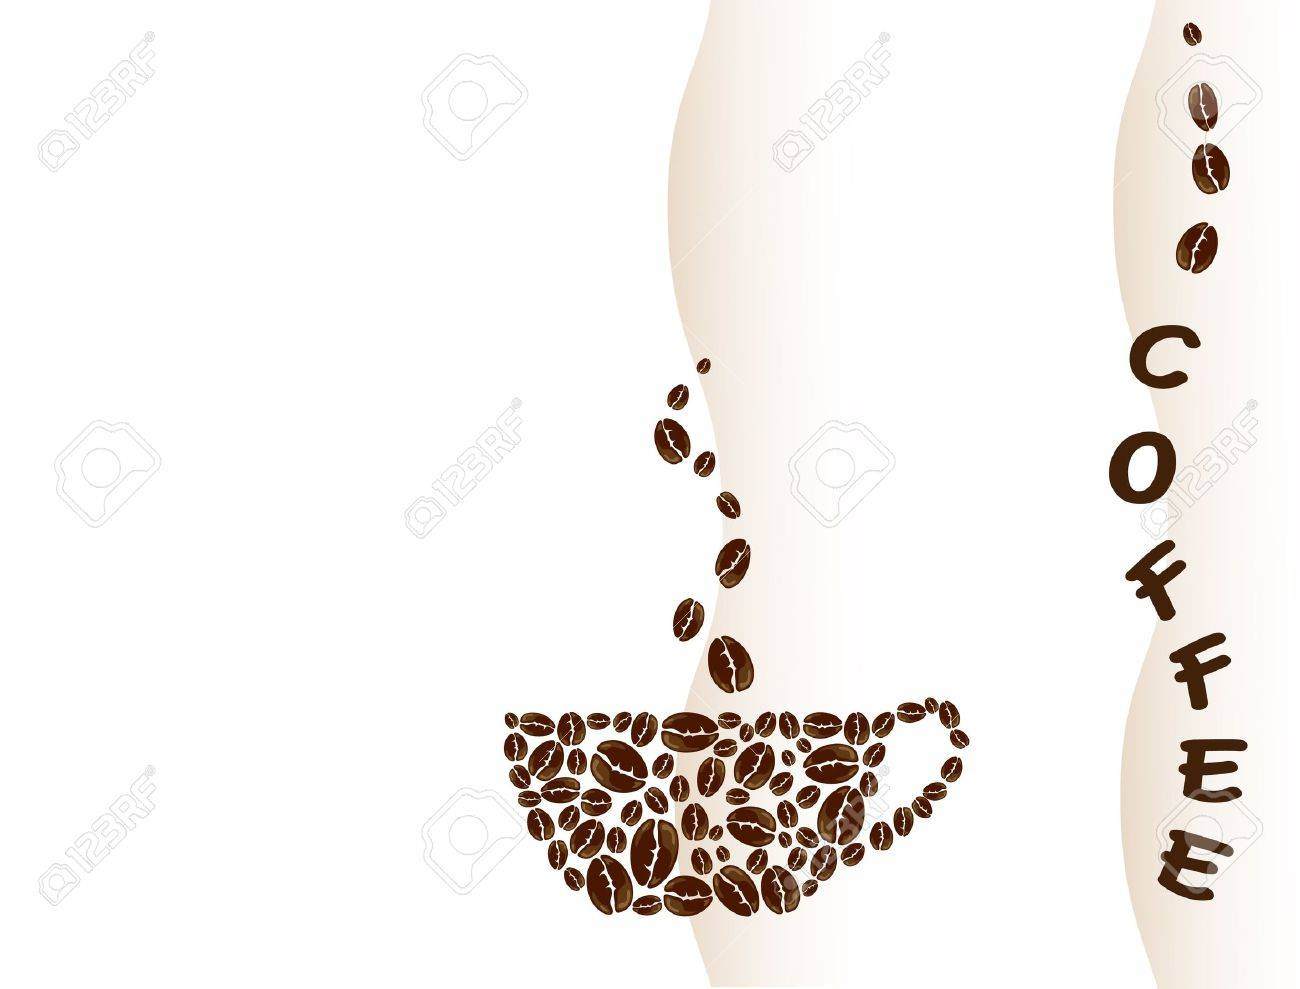 A vector illustration of a coffe cup created with coffe beans. Space for text. Stock Vector - 10767159